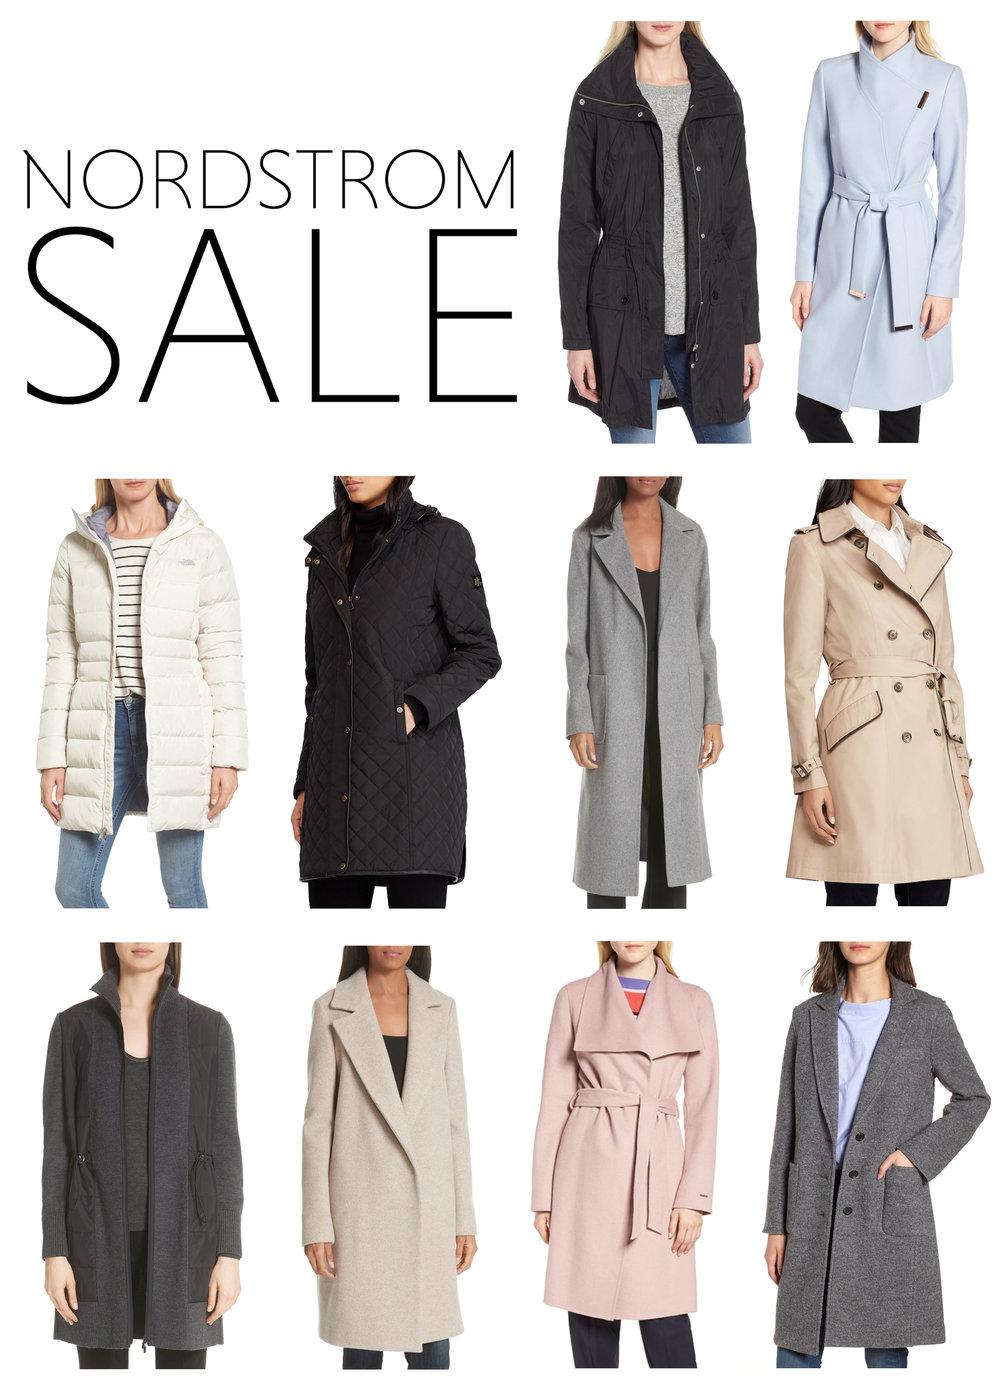 nordstrom-sale-winter-coat-picks.jpg